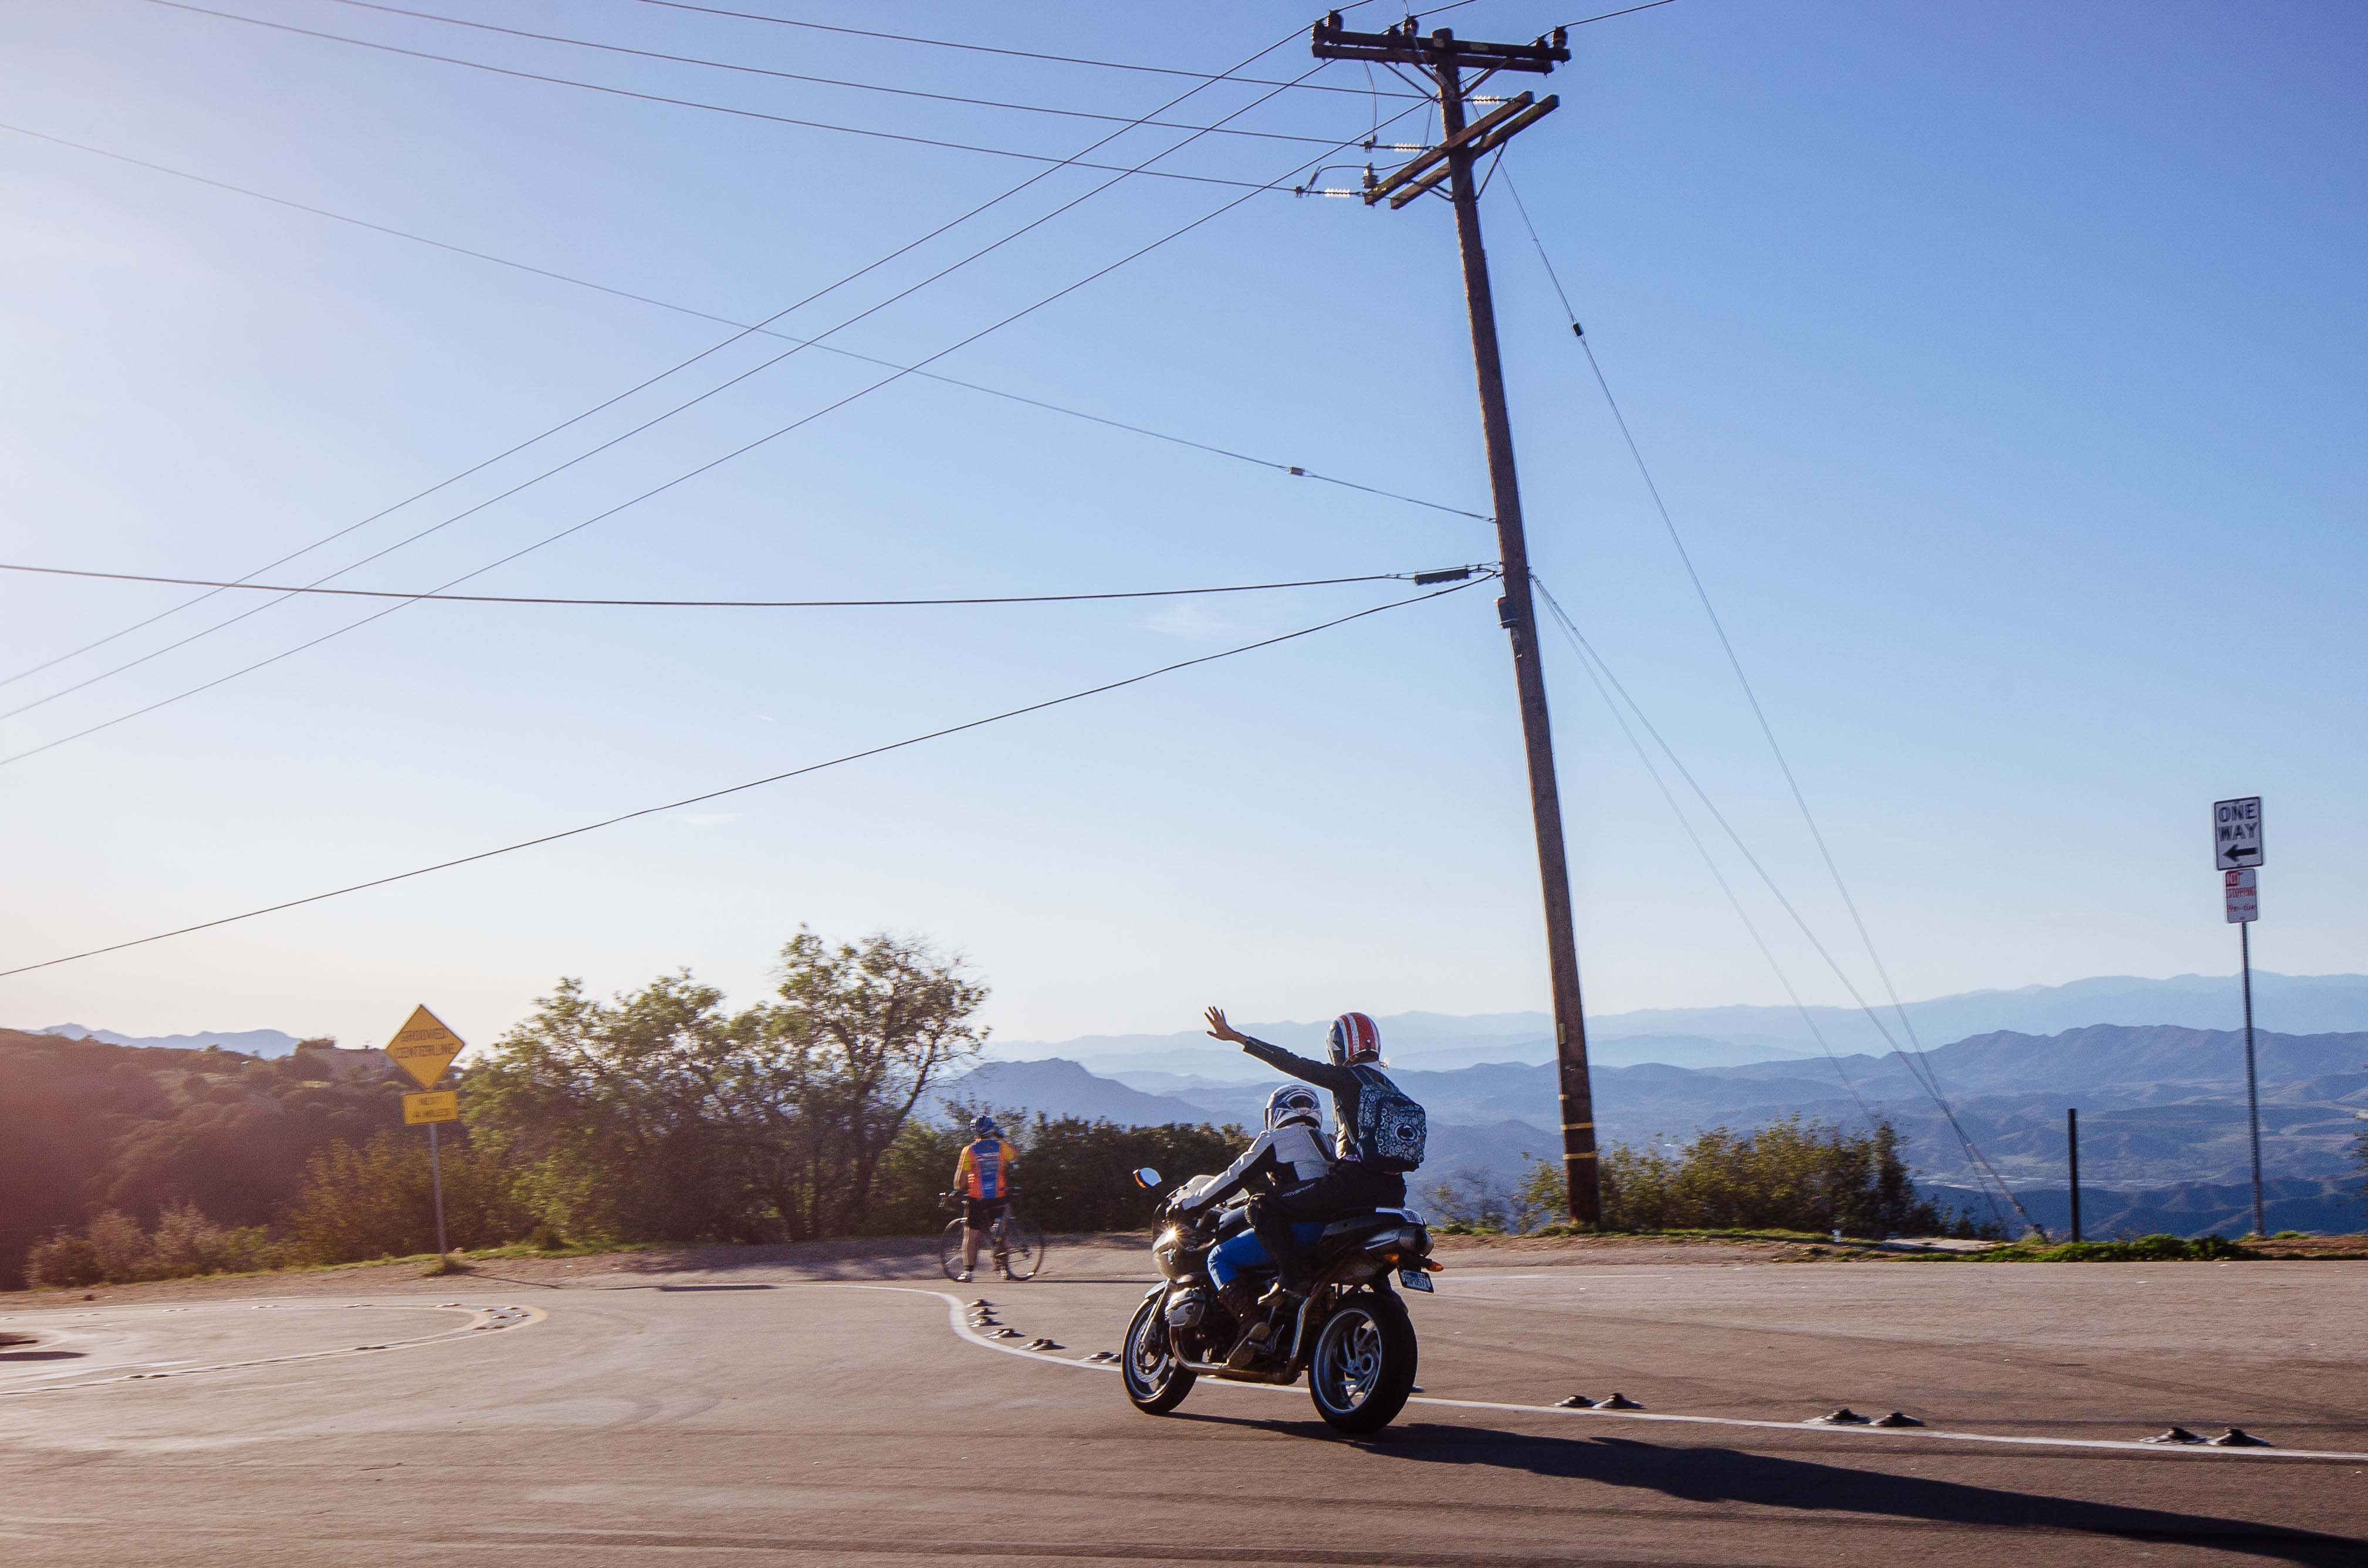 Art of Transit: two different types of two-wheelers at the top of Stunt Road in the Santa Monica Mountains. Photo by Steve Hymon.